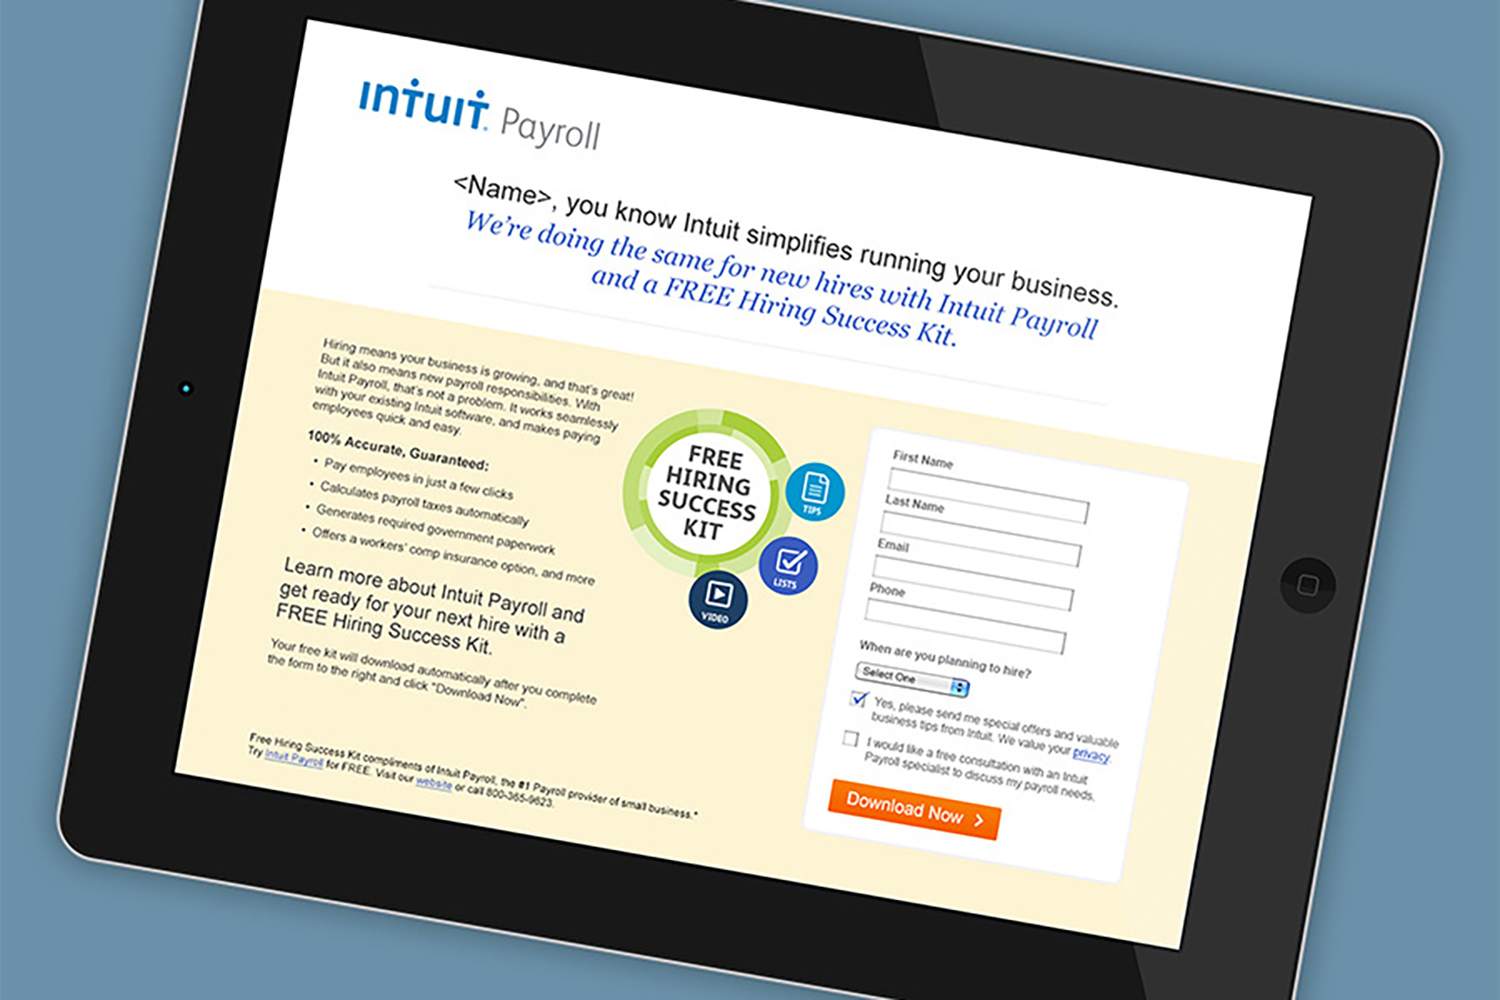 Intuit Landing Pages : Testing email is one thing, but what about landing pages? These data-driven pages were designed to dynamically optimize results